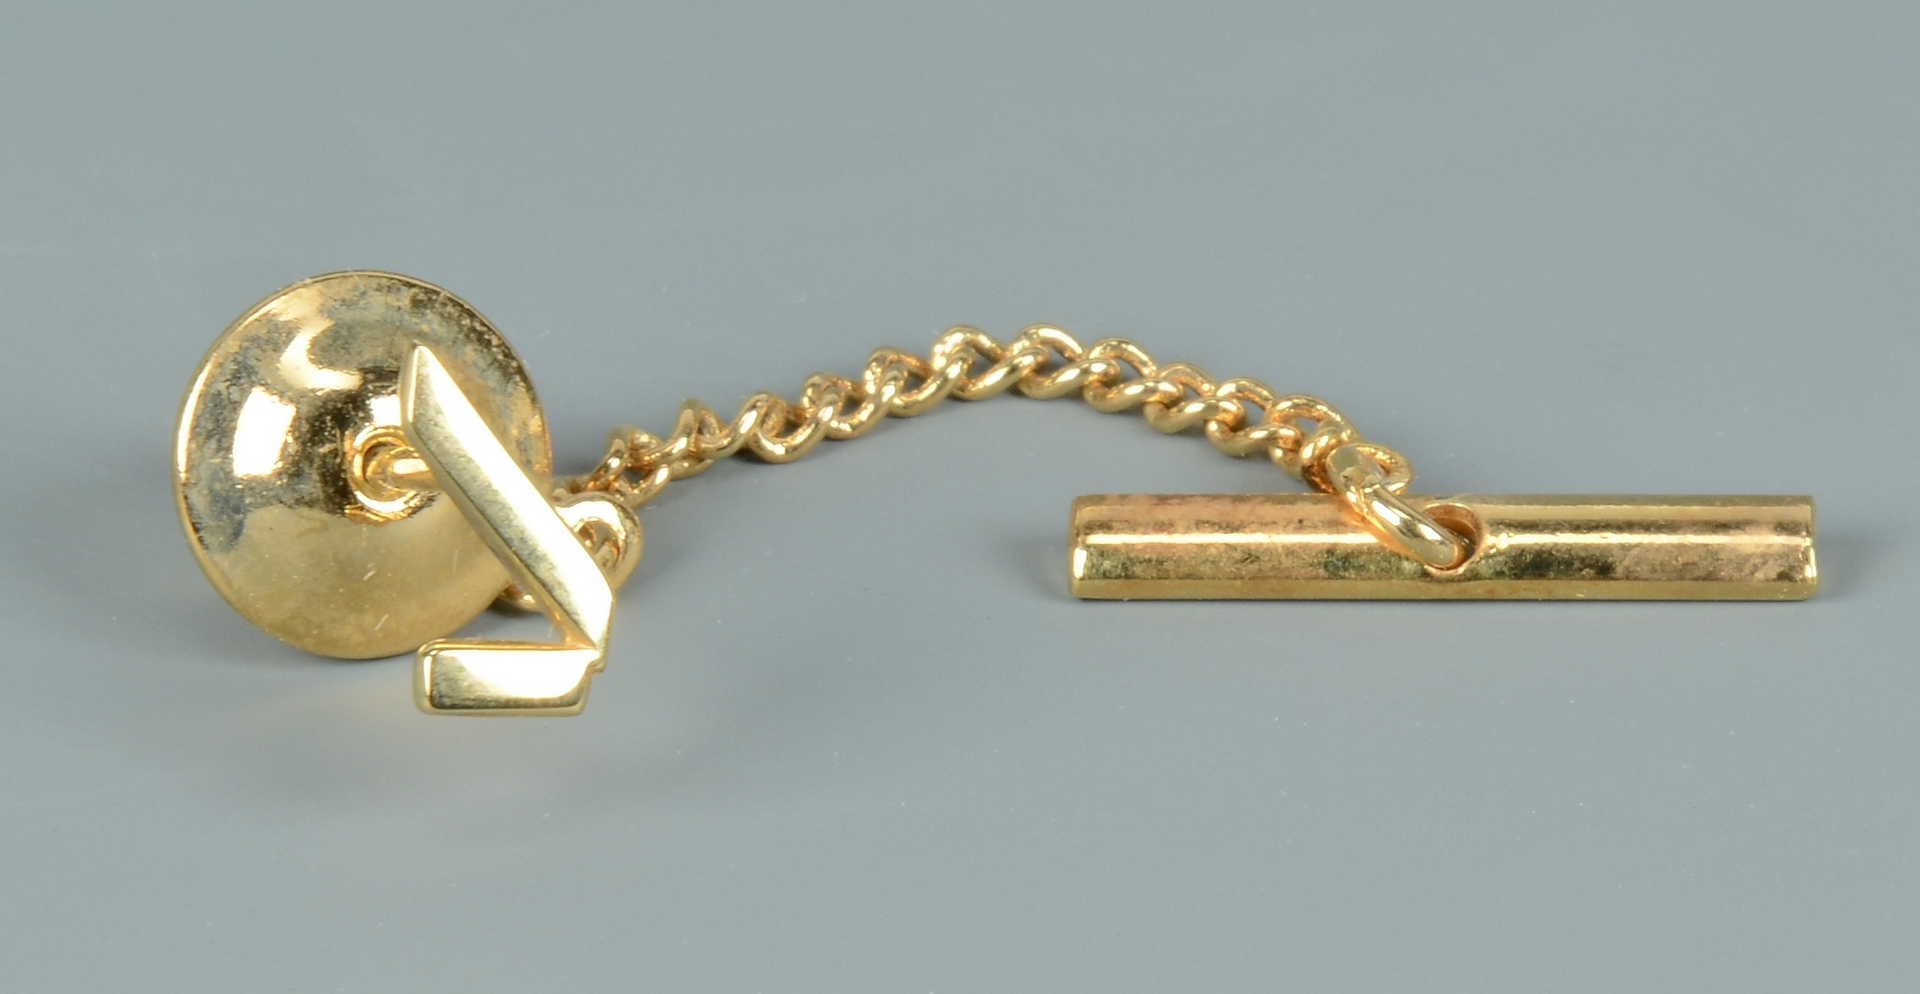 Lot 3088229: Gents gold ring, tie clip and frat pin